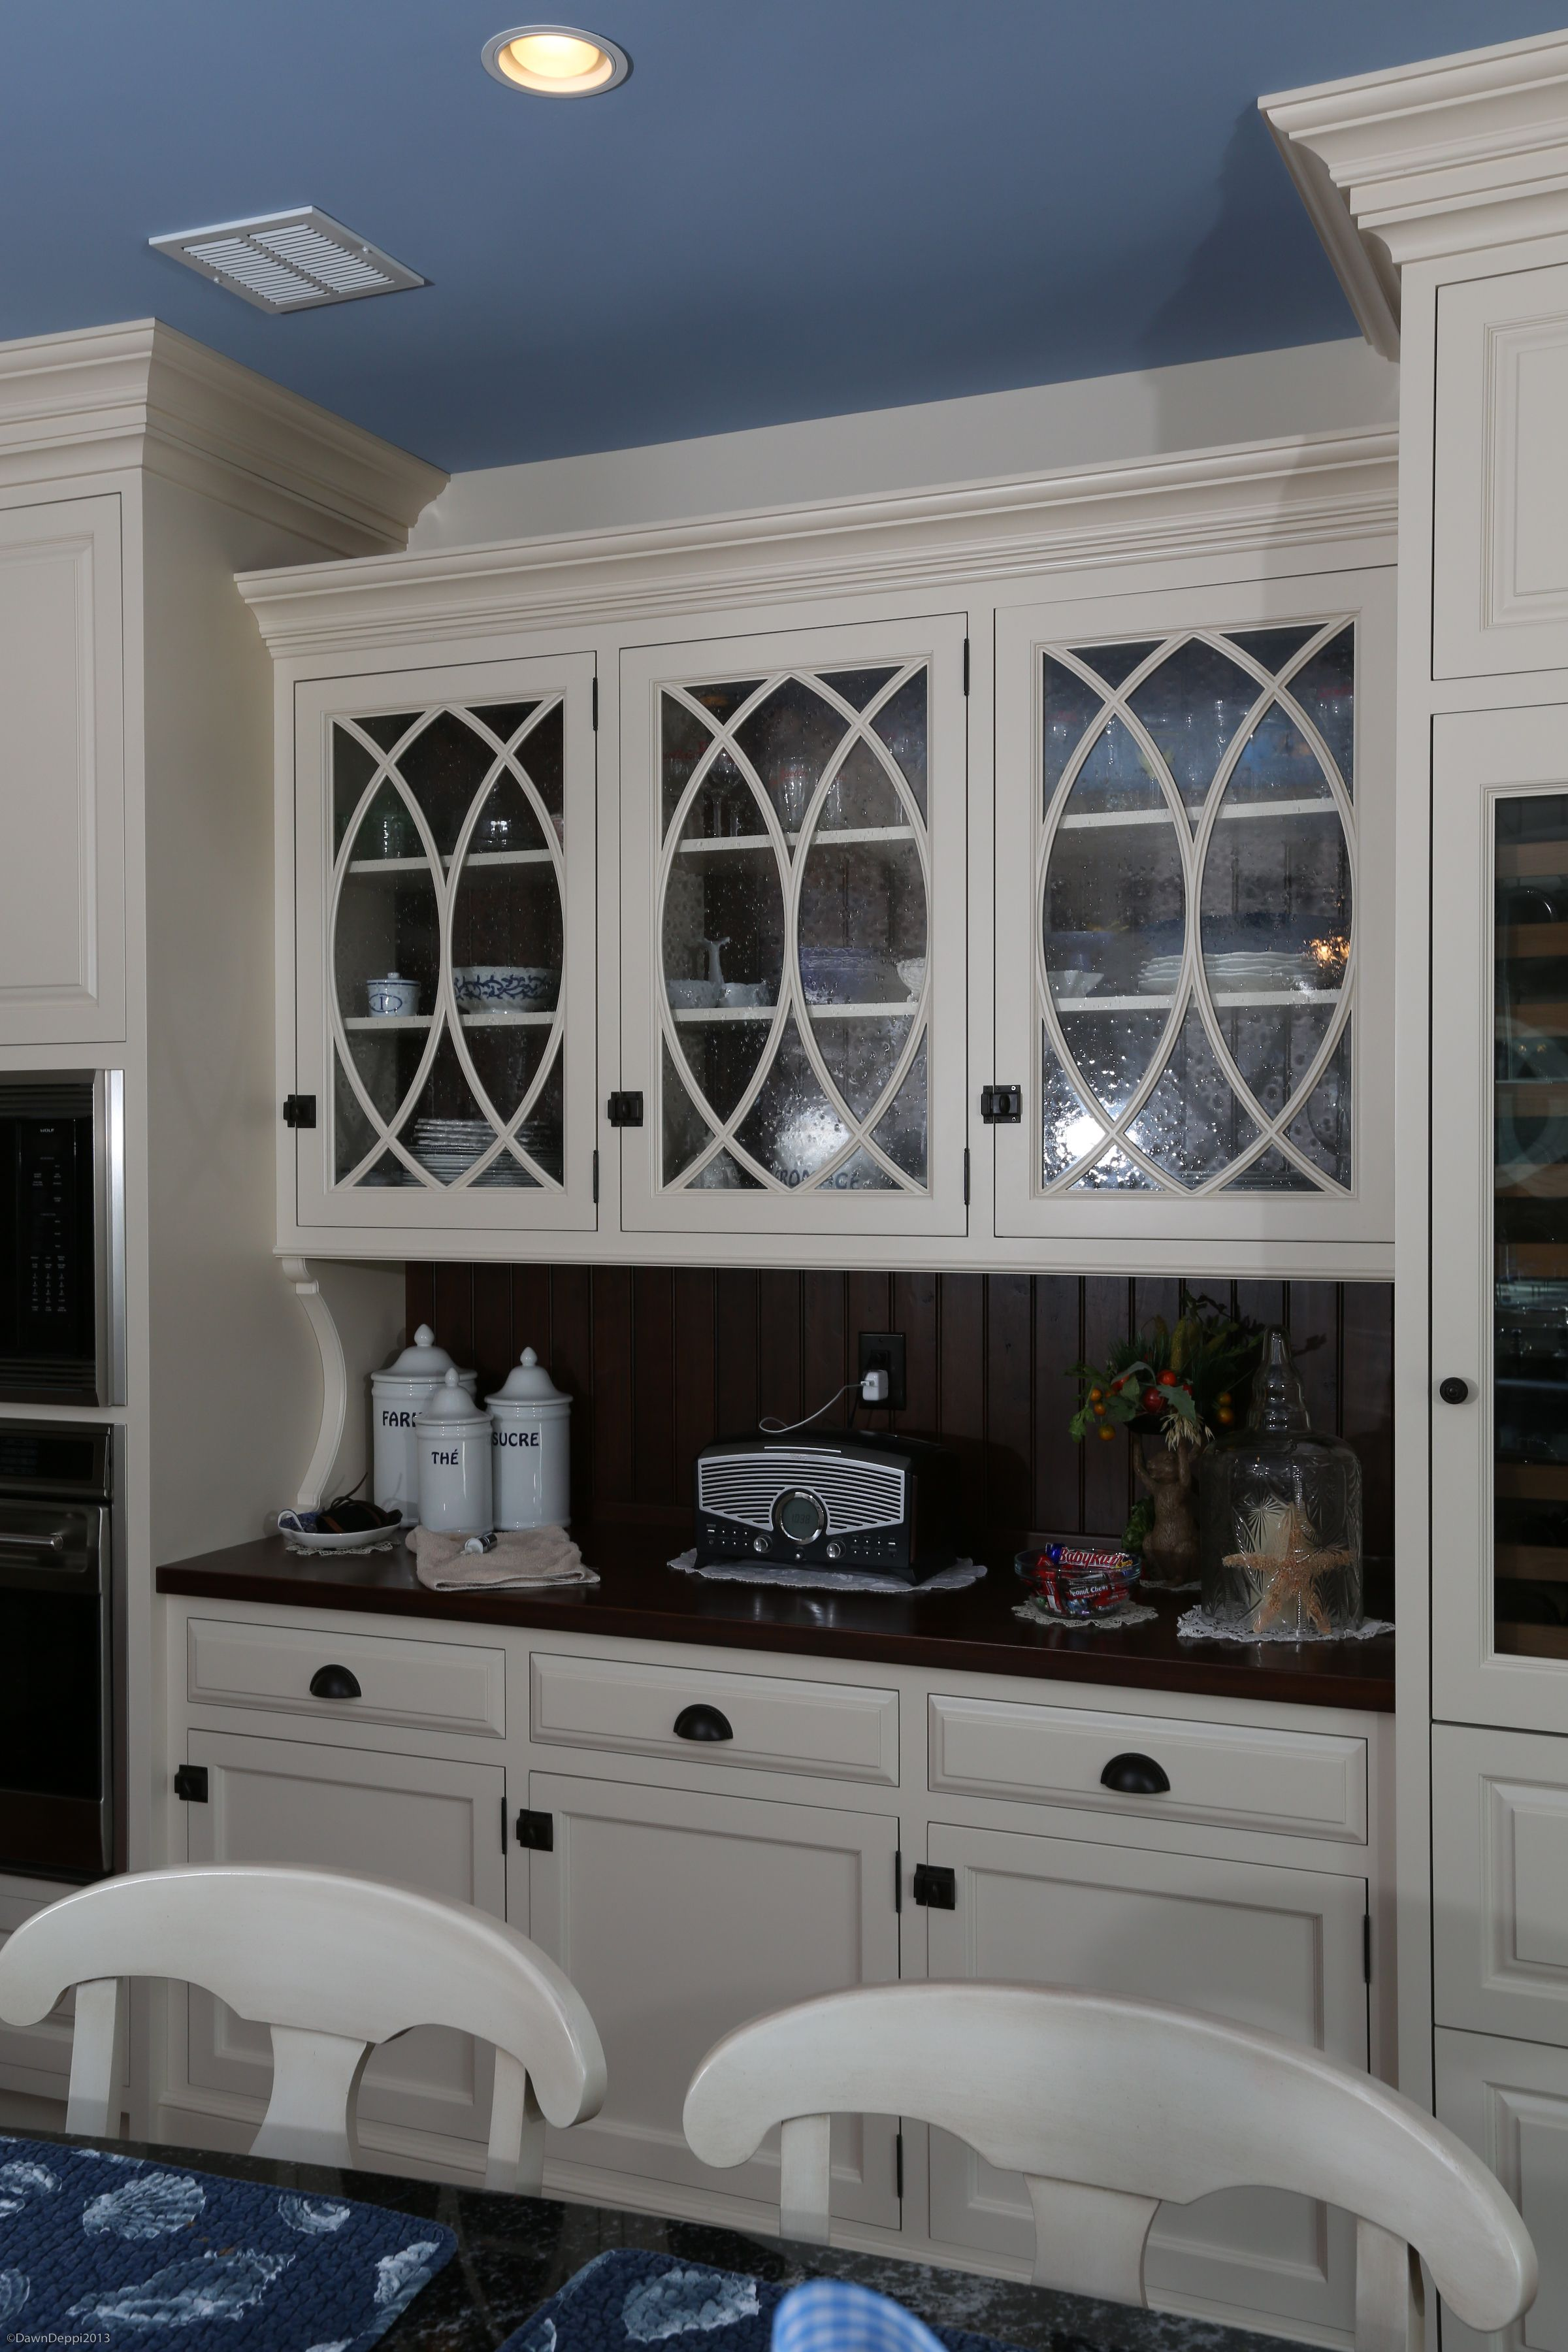 white painted hutch cabinetry with curved mullions and clear glass inserts contrasting b on kitchen cabinets glass inserts id=59409